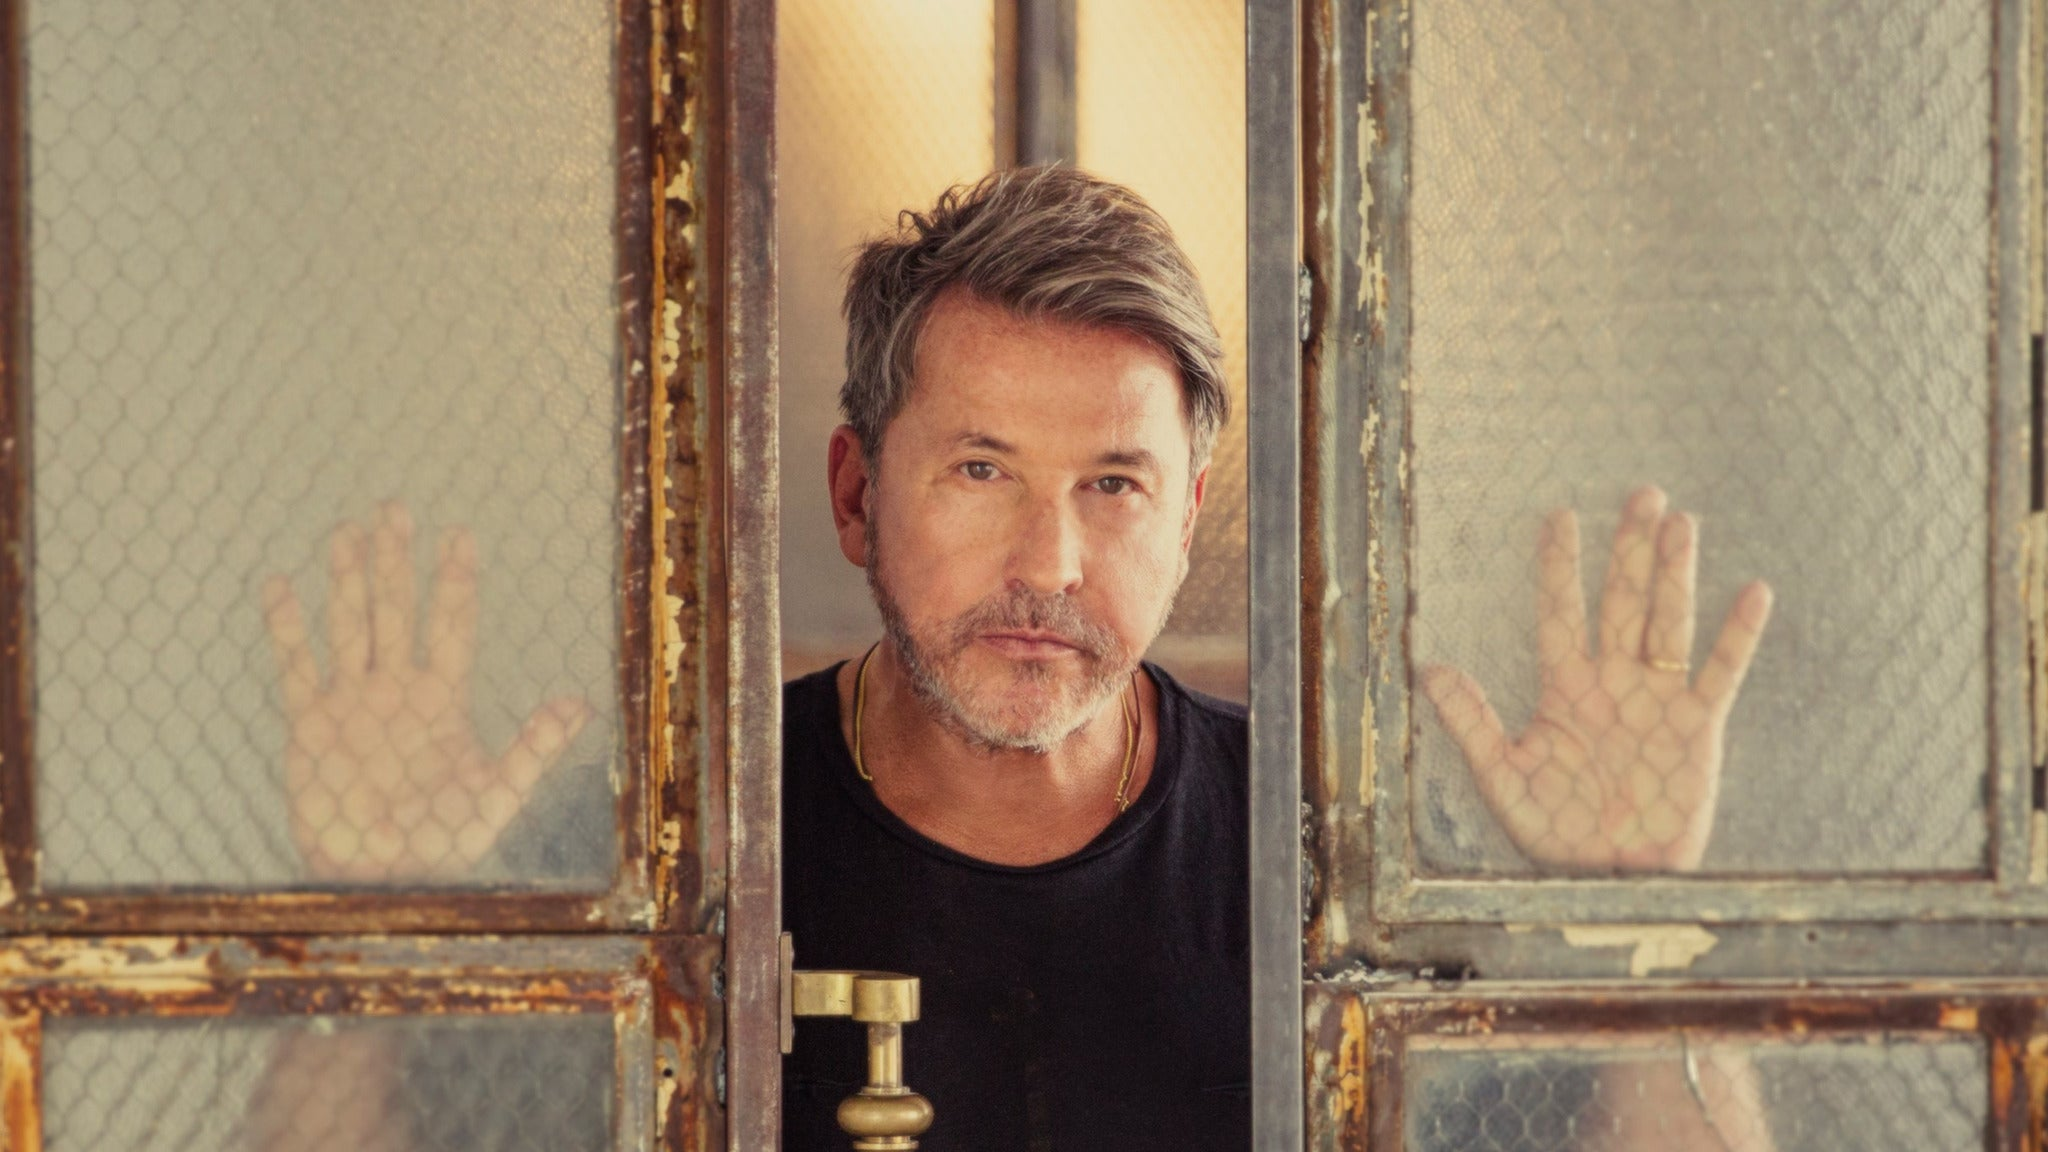 Ricardo Montaner at The Plaza Theatre Performing Arts Center